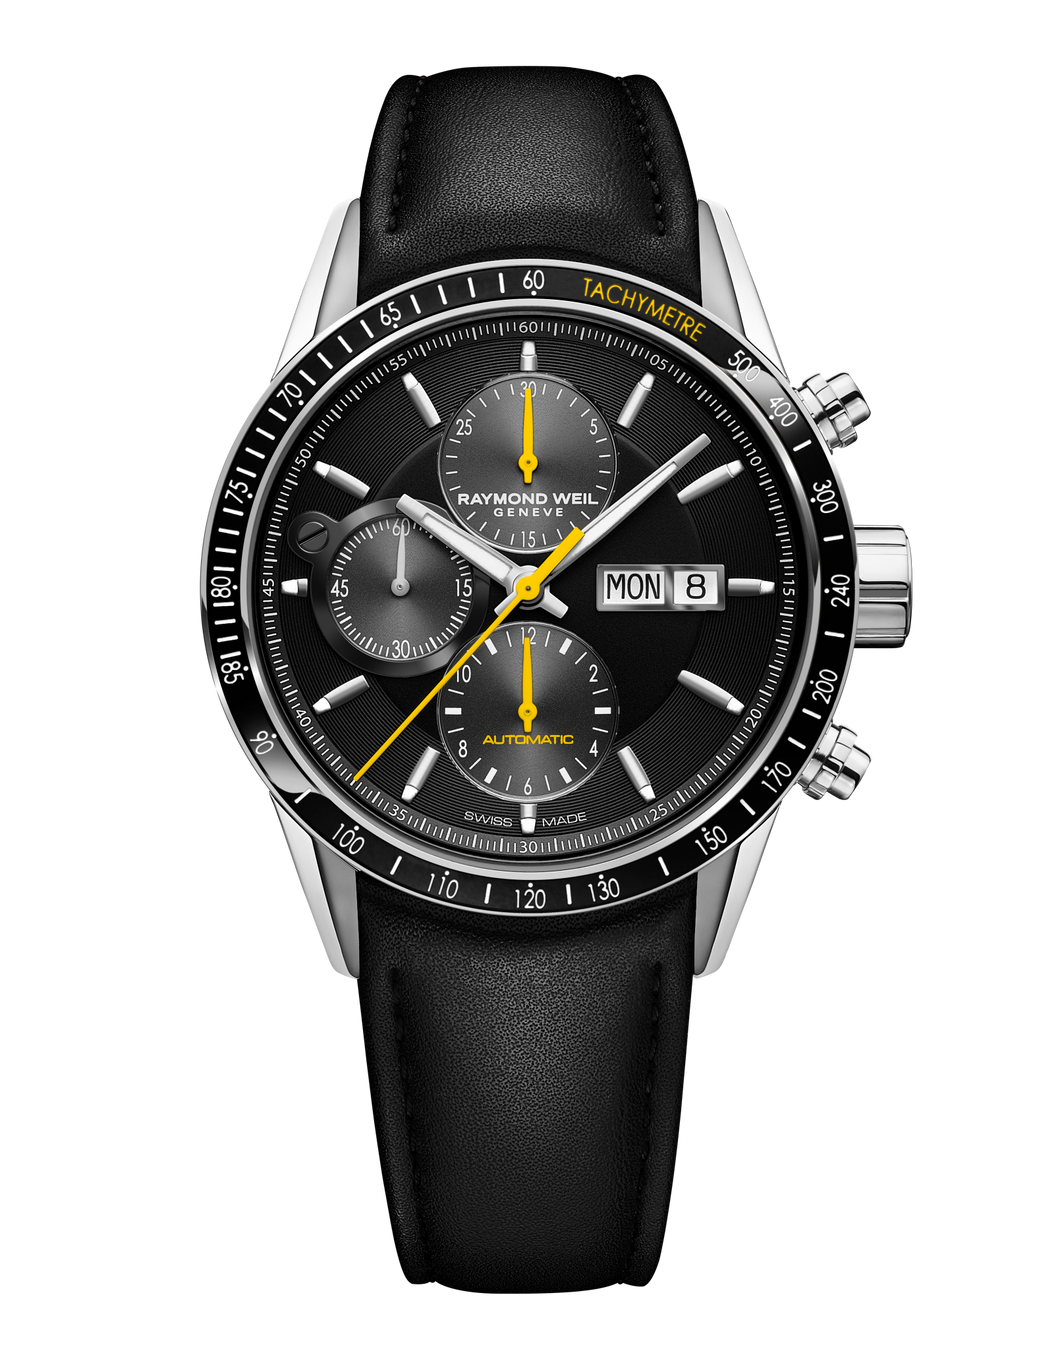 Raymond Weil Freelancer Men's Automatic Chronograph Black Yellow Leather Watch